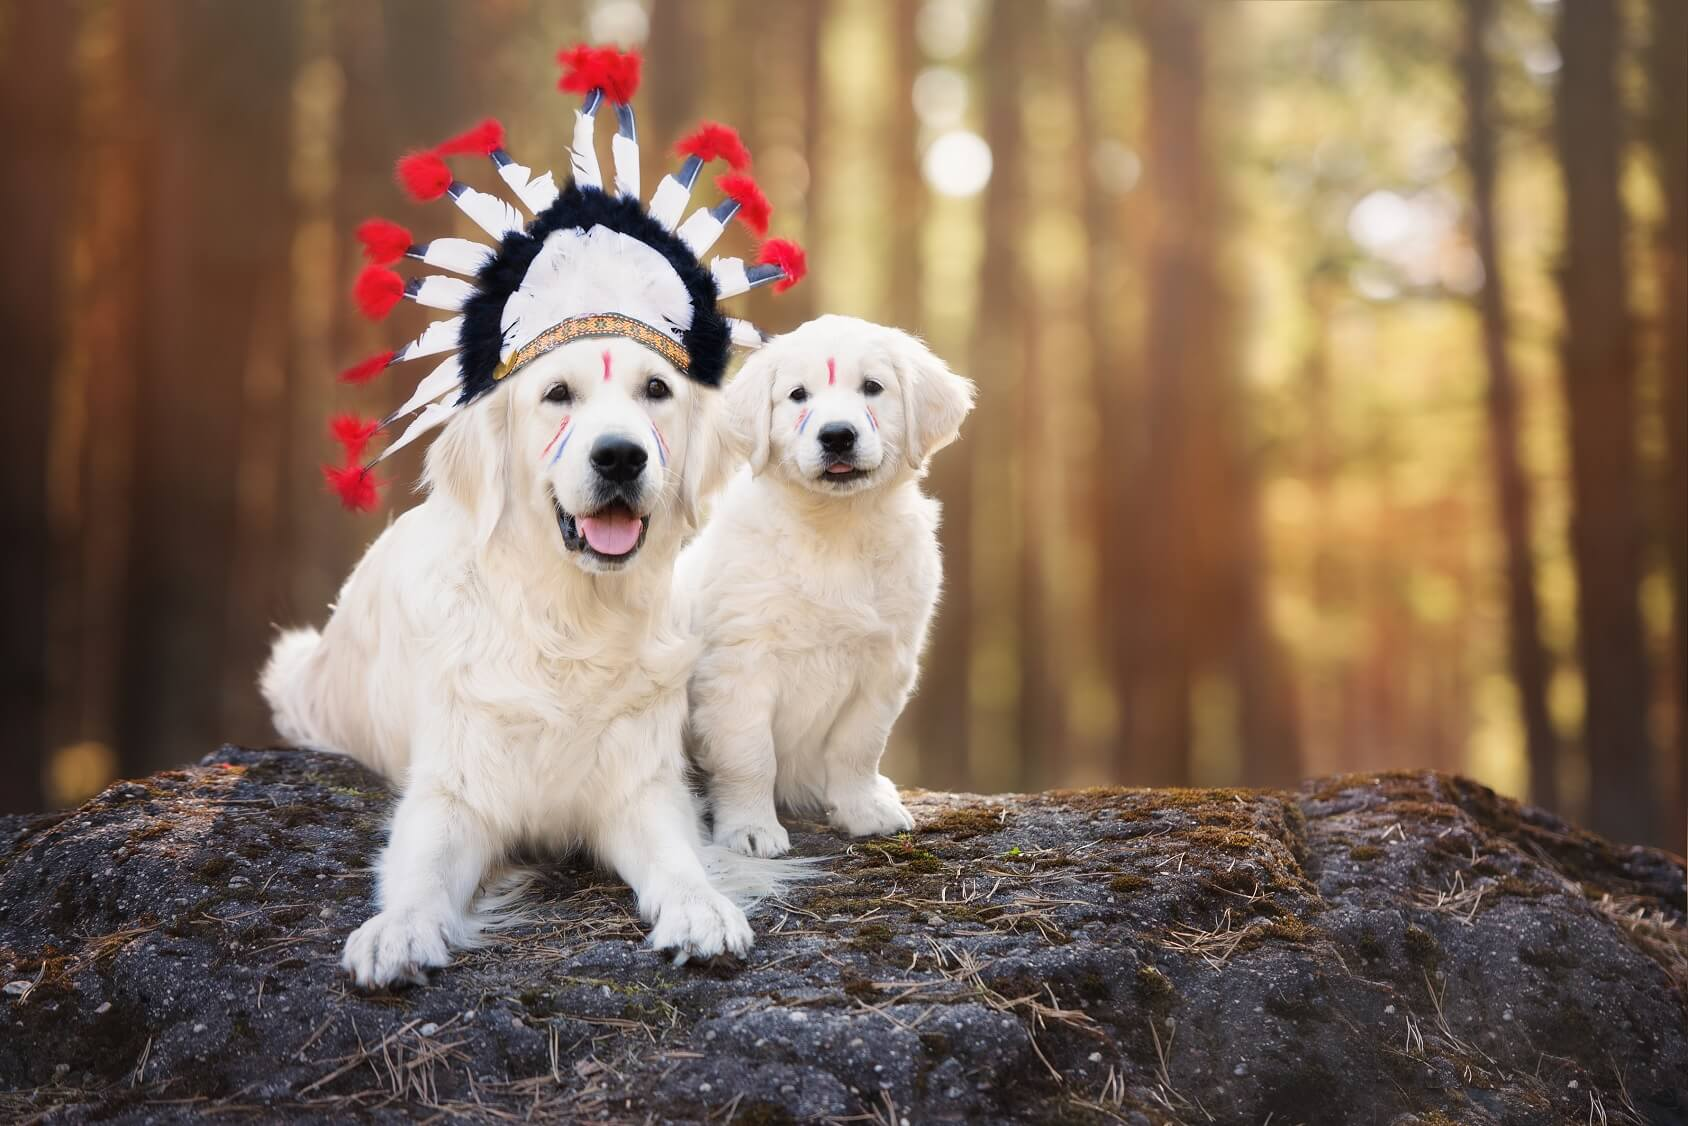 Native American Dog Names Complete List Of 300 Meaningful Names Perfect Dog Breeds